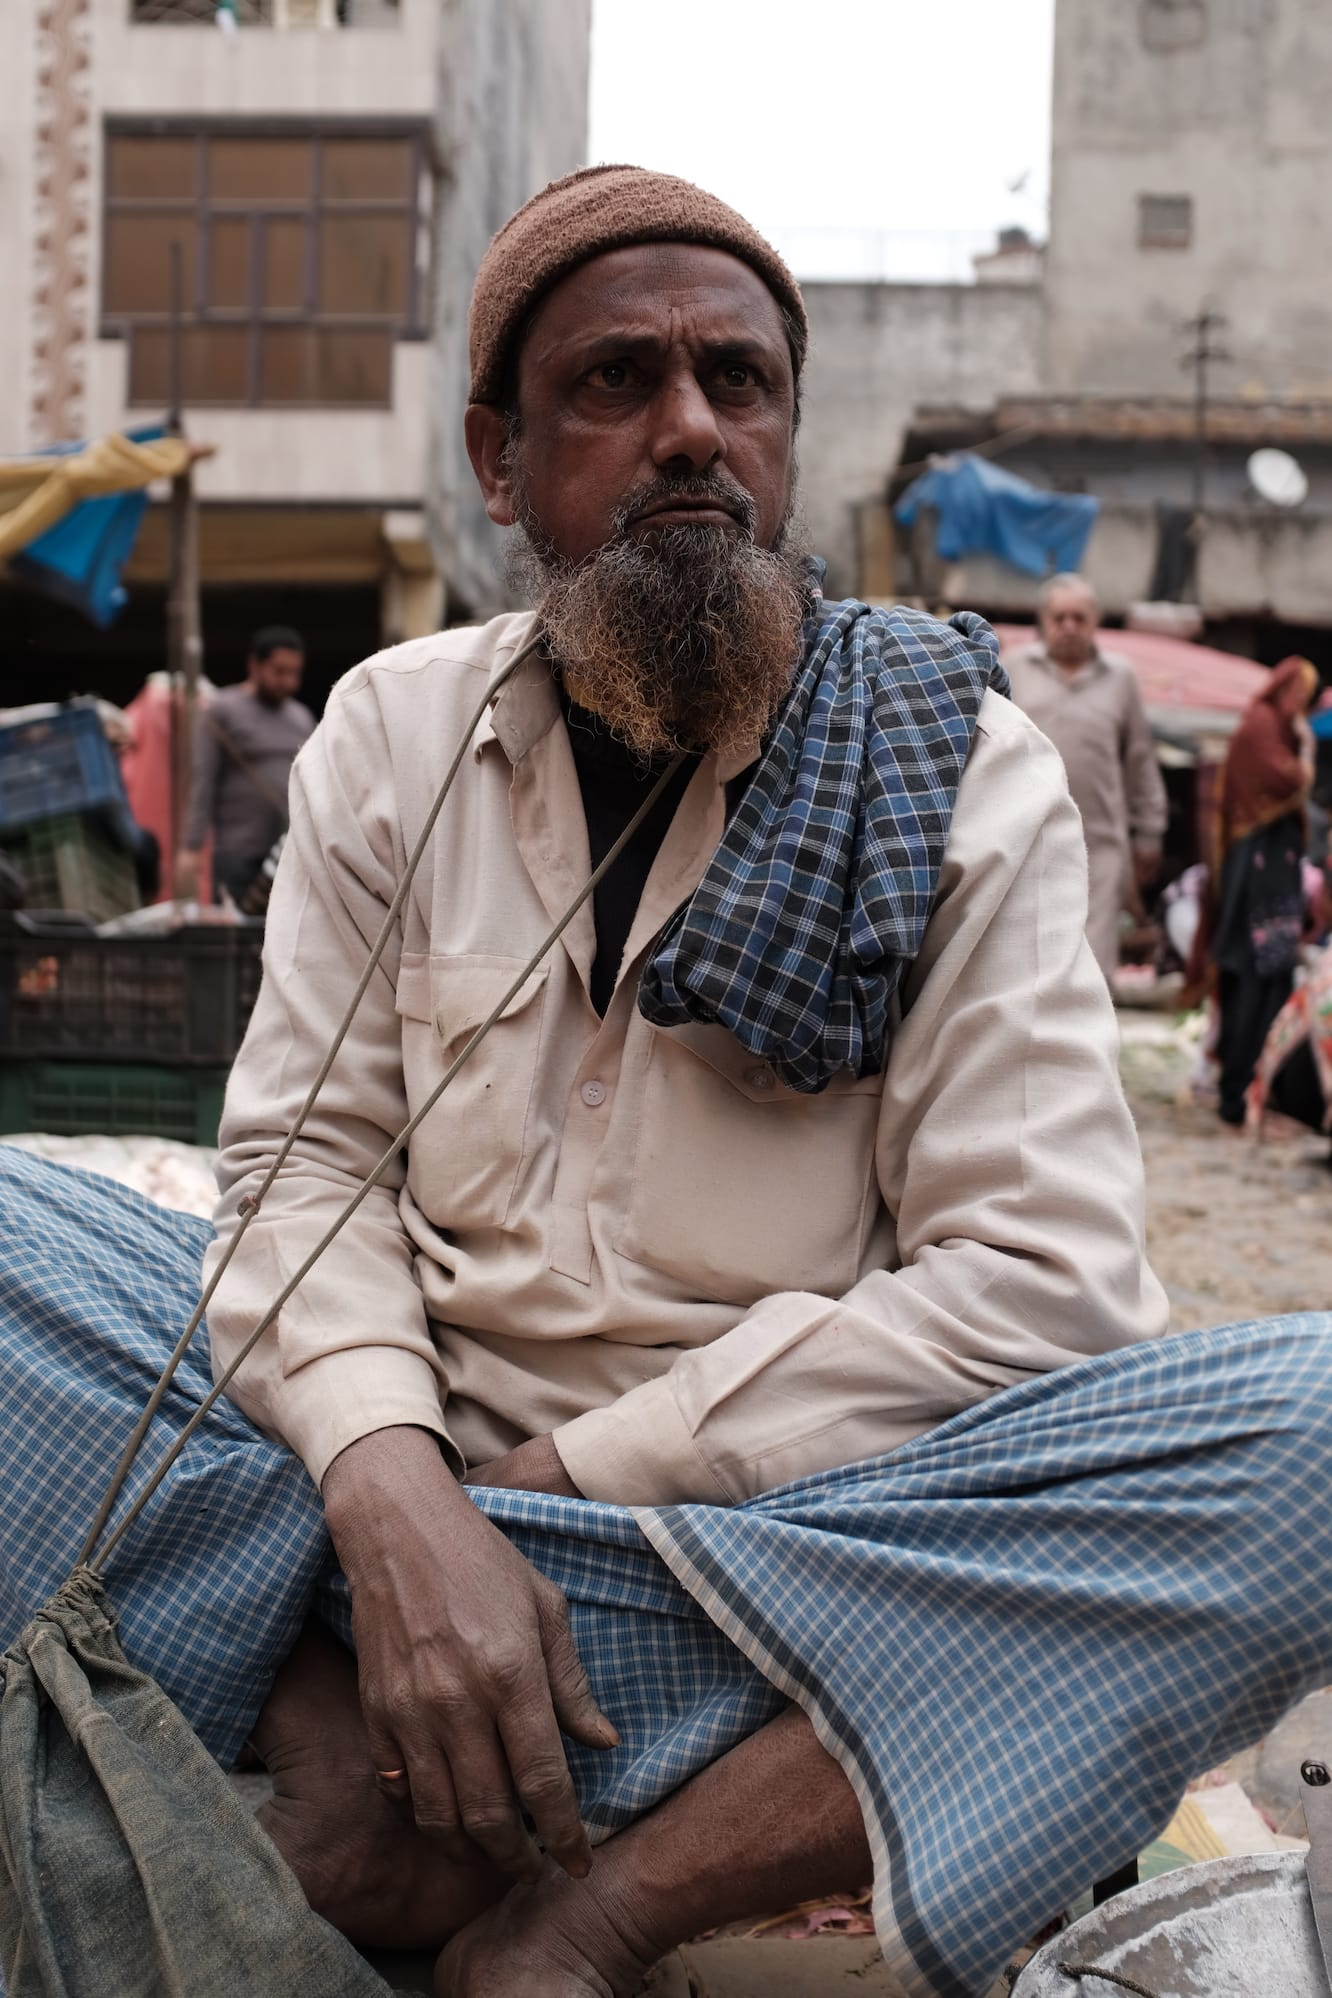 A Man with Beard Selling Vegetables at a Market in Delhi